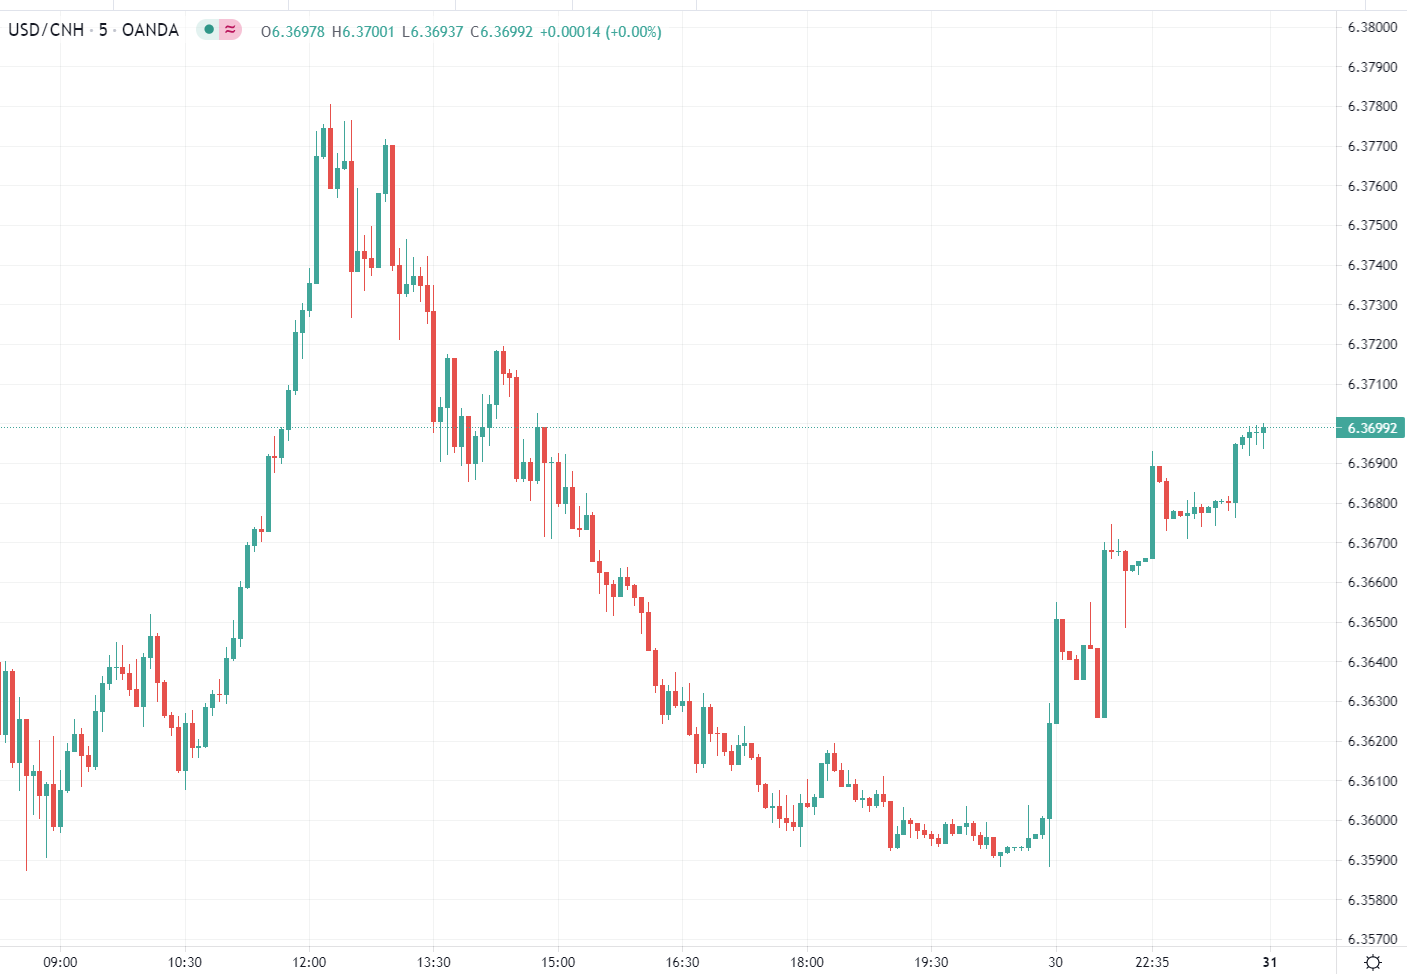 The post here contained two separate items from China over the weekend on concerns over the yuan rising too rapidly: